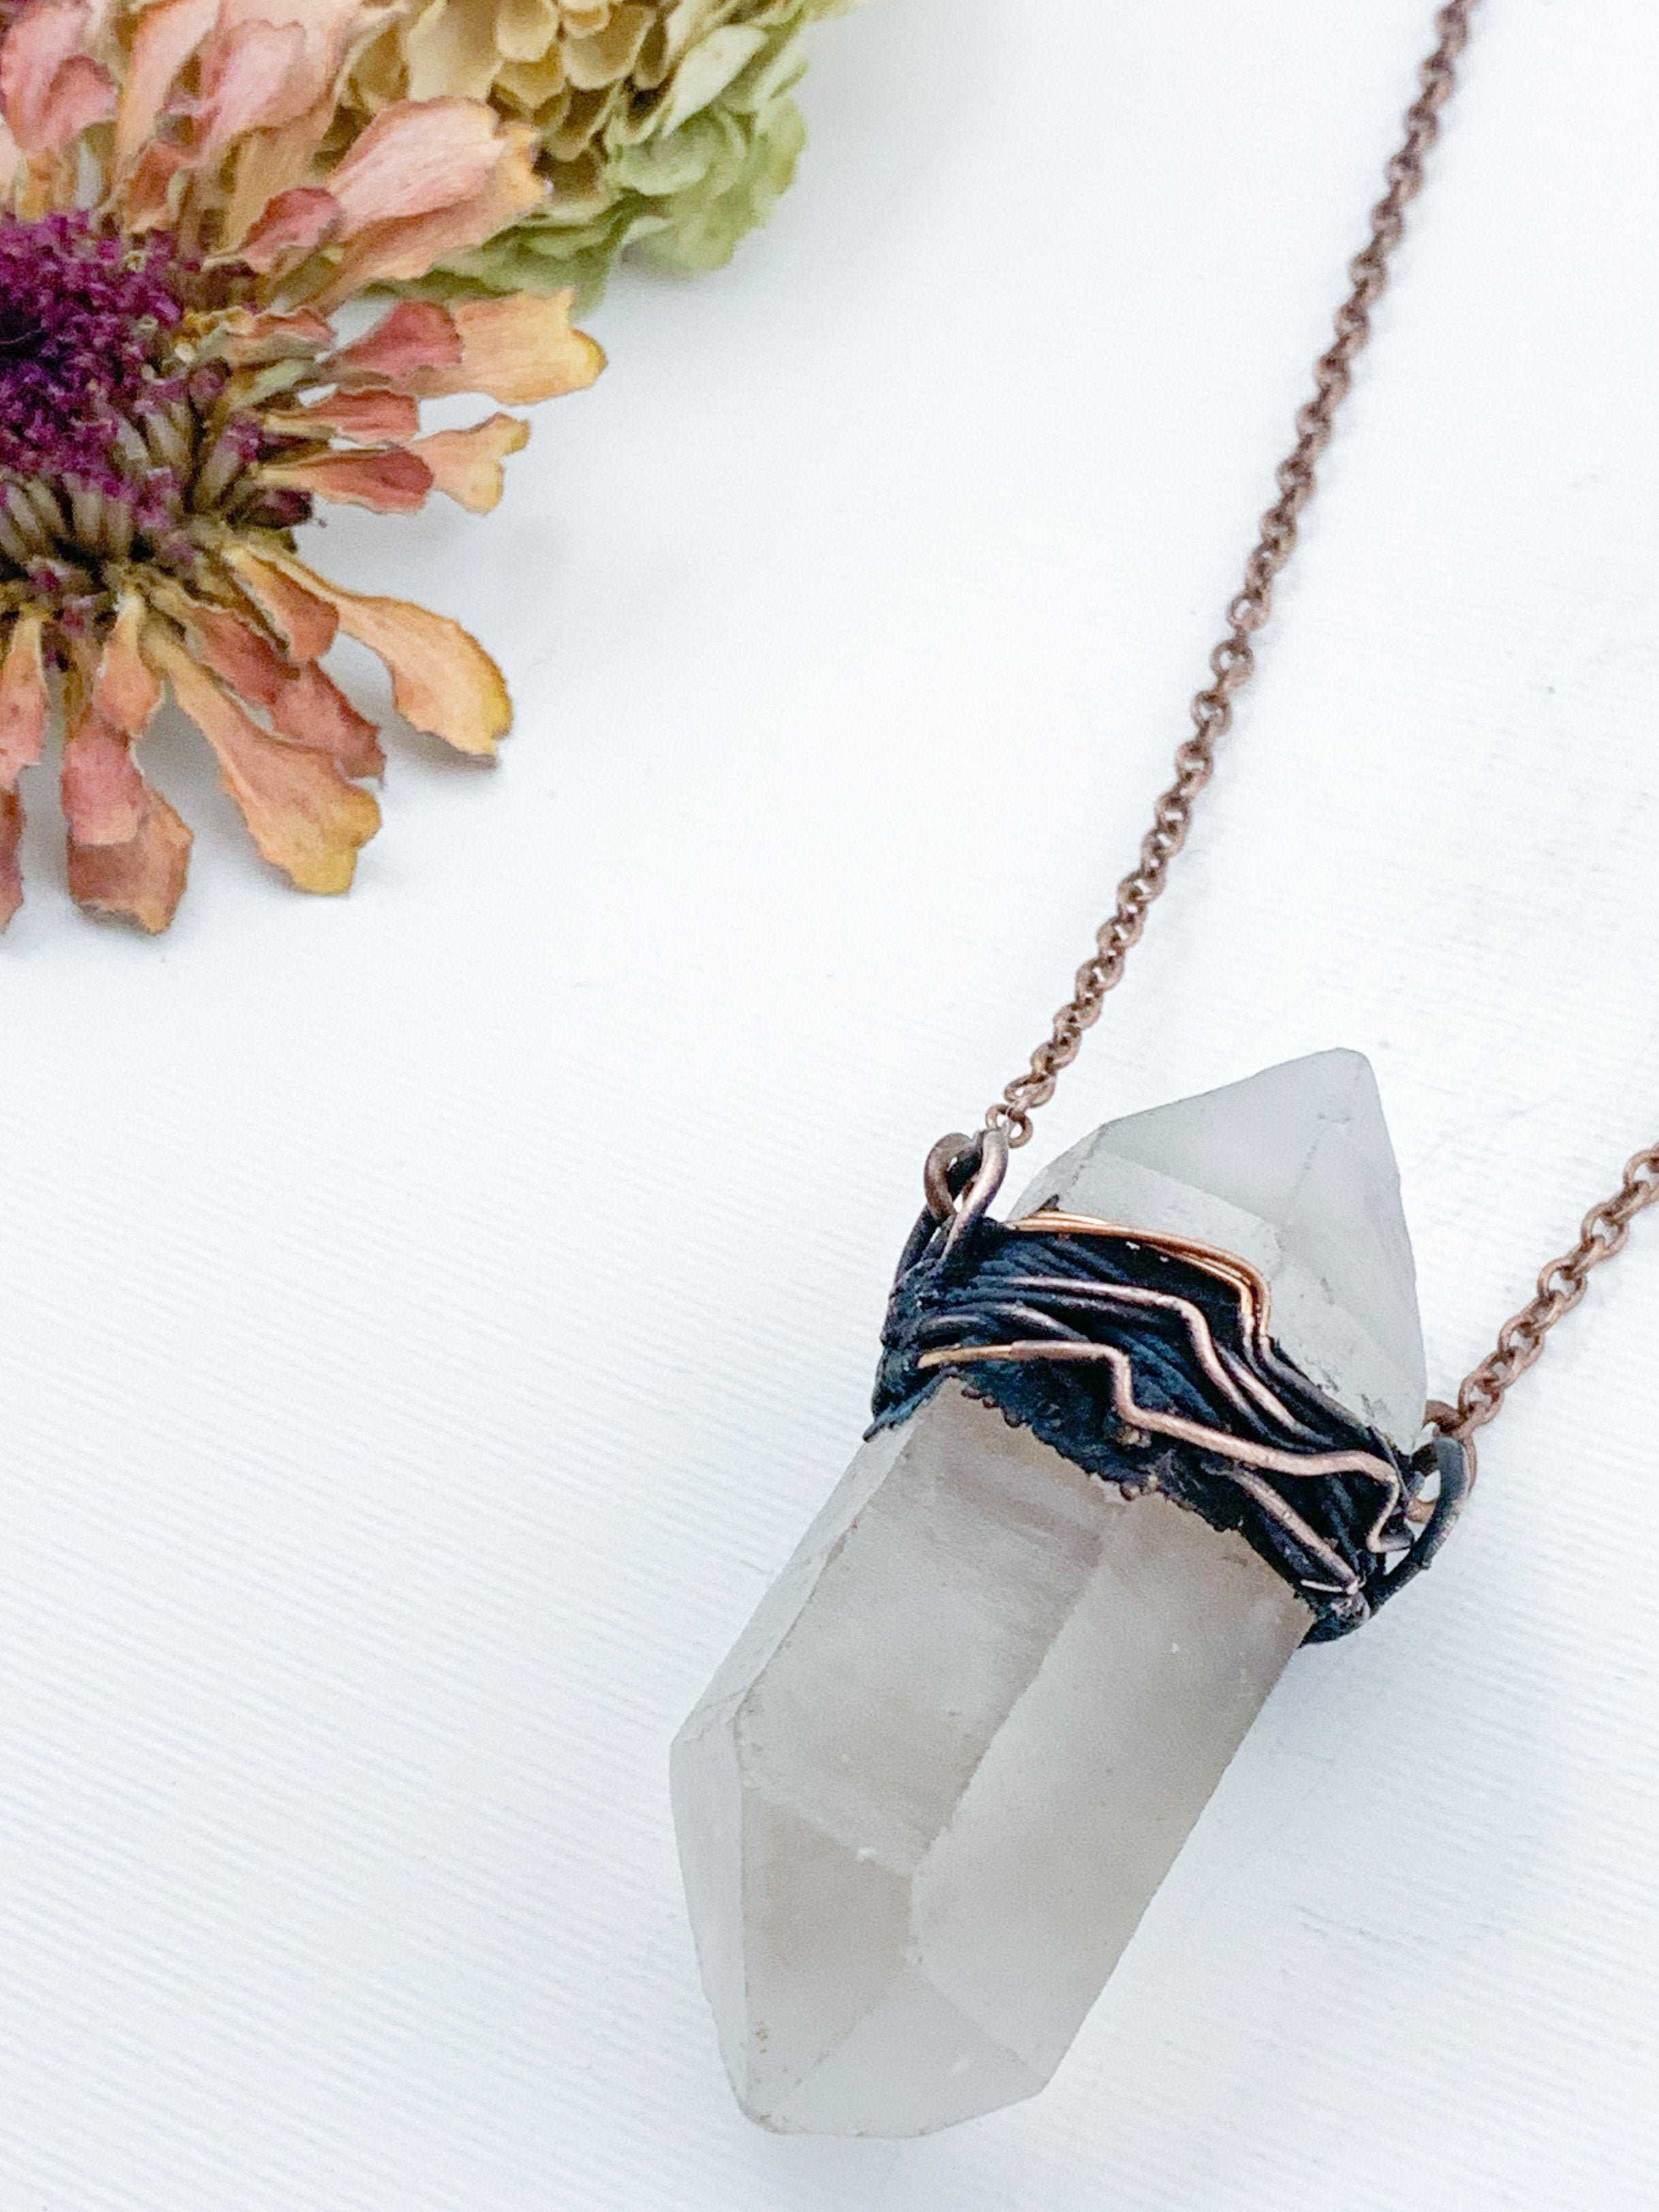 Double Terminated Clear Quartz Pendant - Allie & Tess